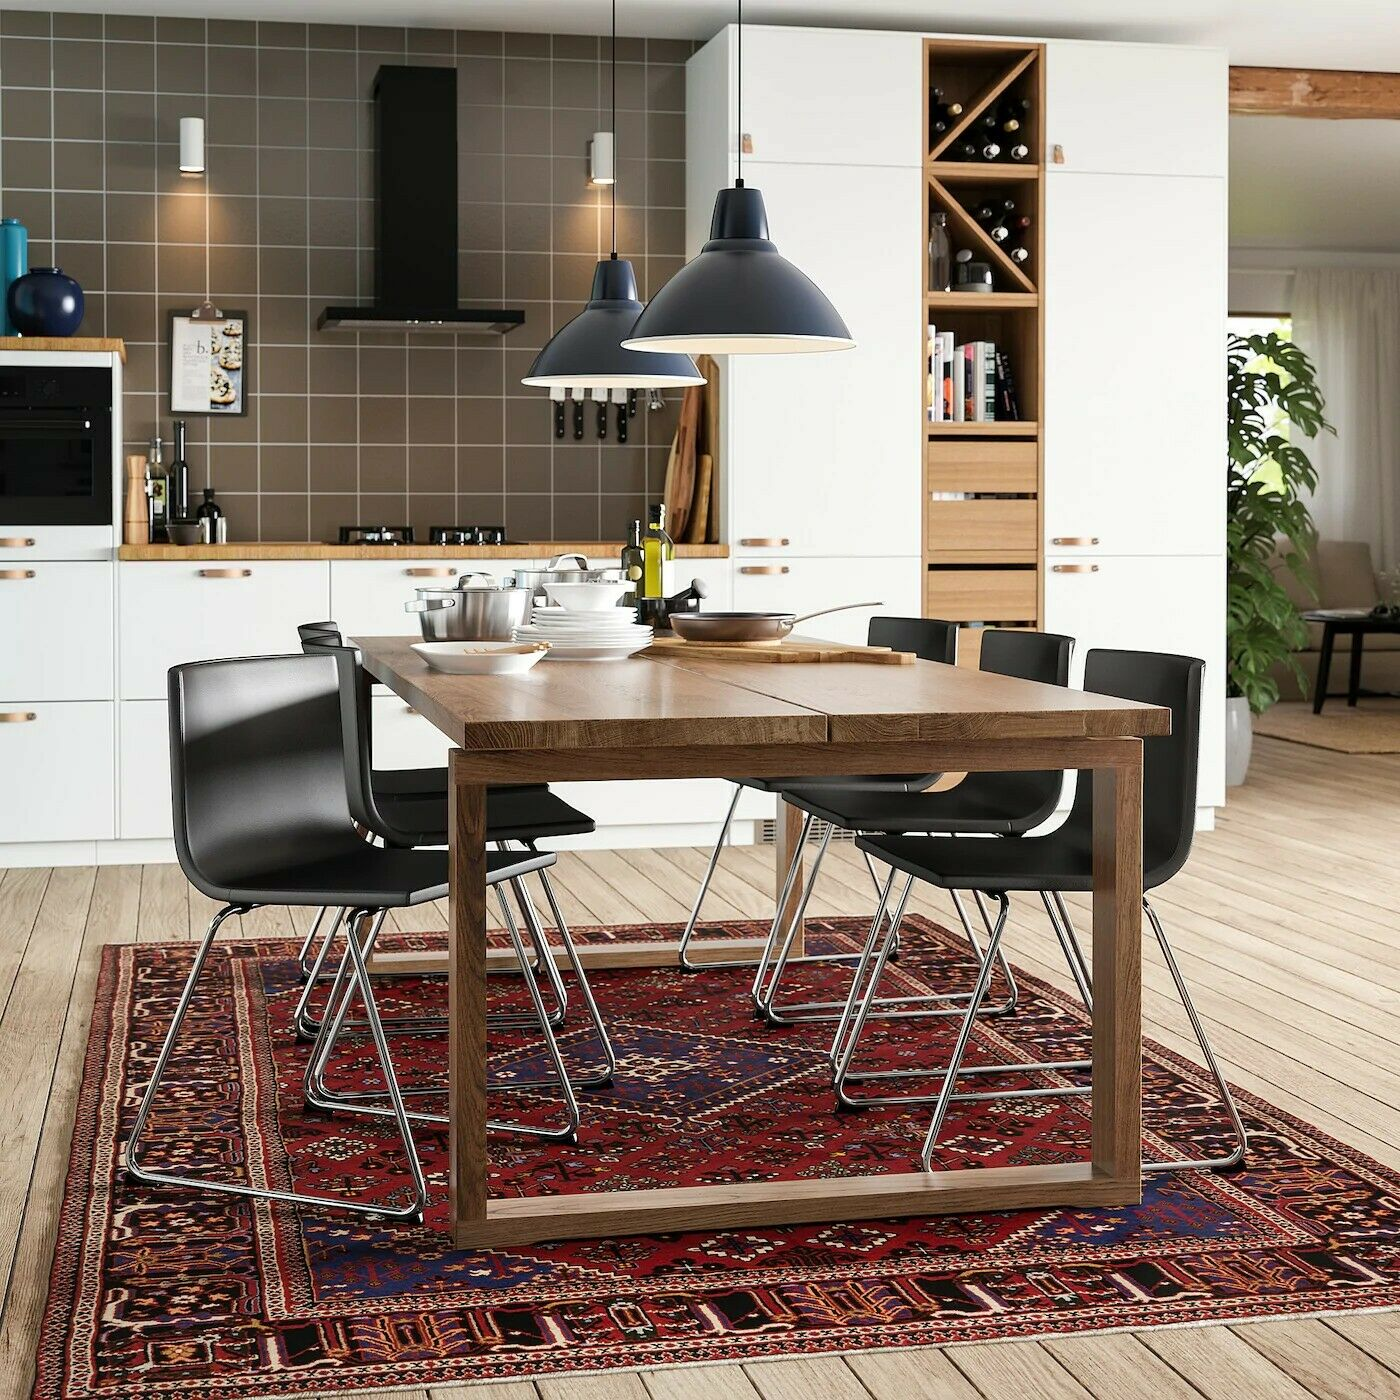 IKEA Dining Room Chairs for sale | eBay